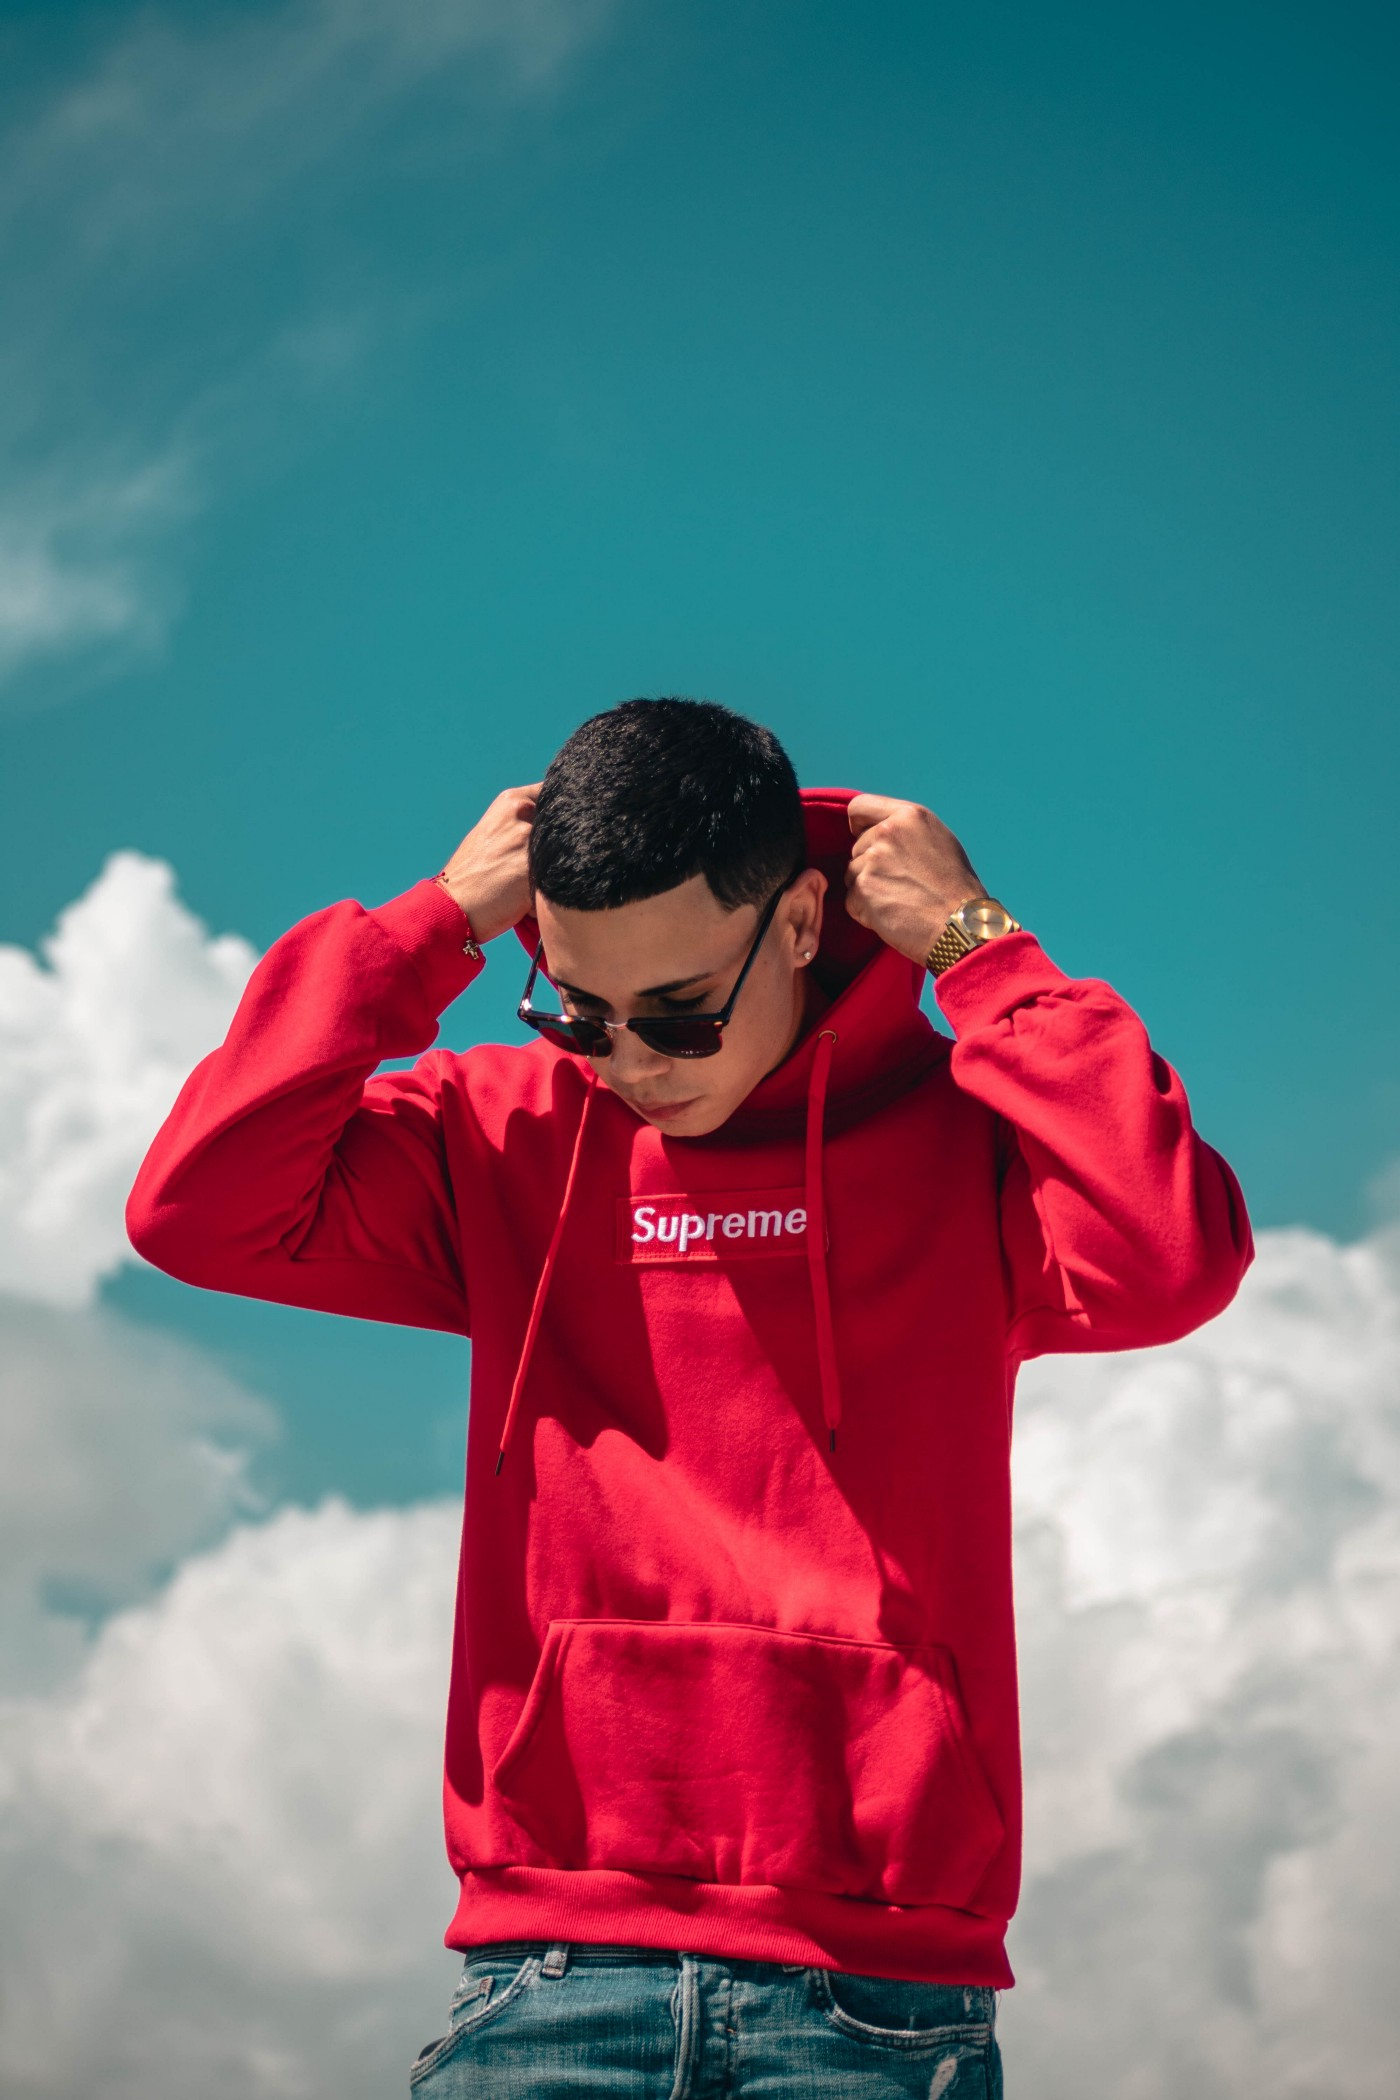 A man in a red hoodie.